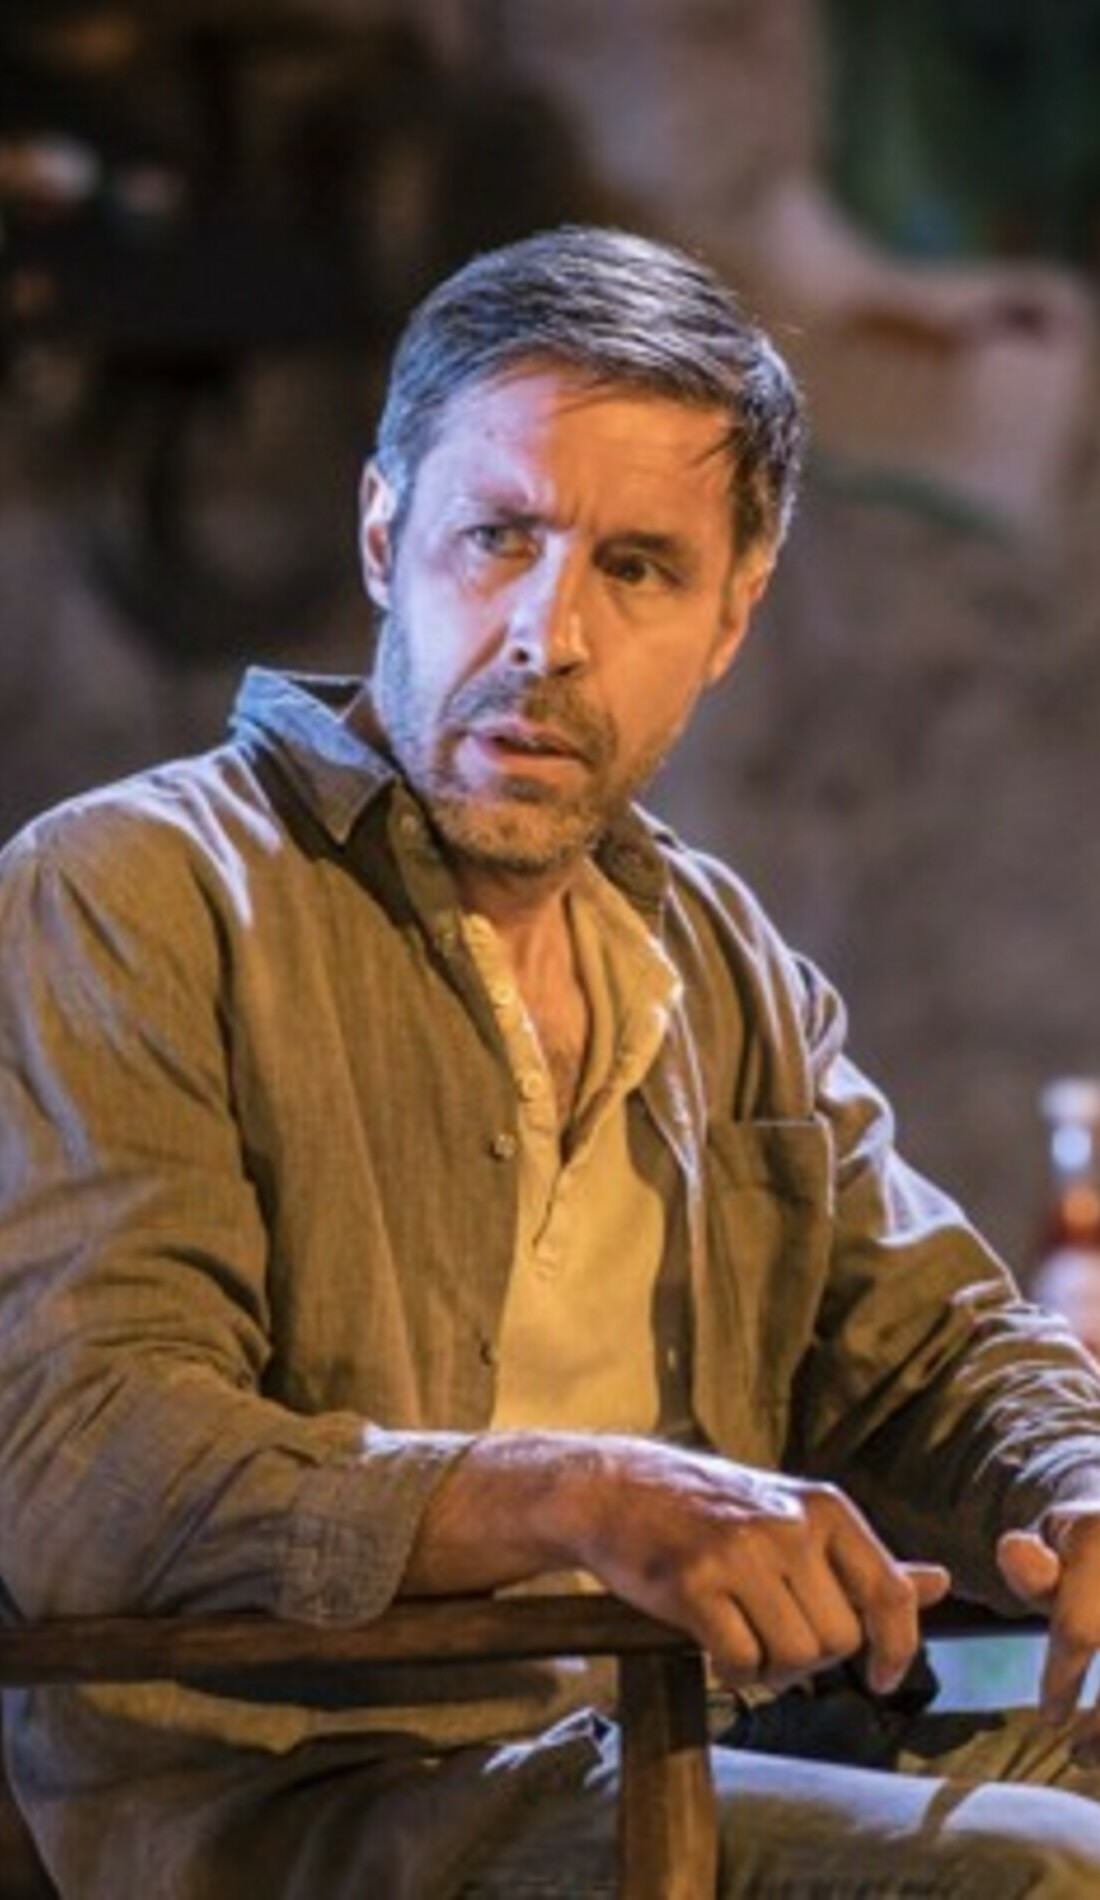 A The Ferryman live event